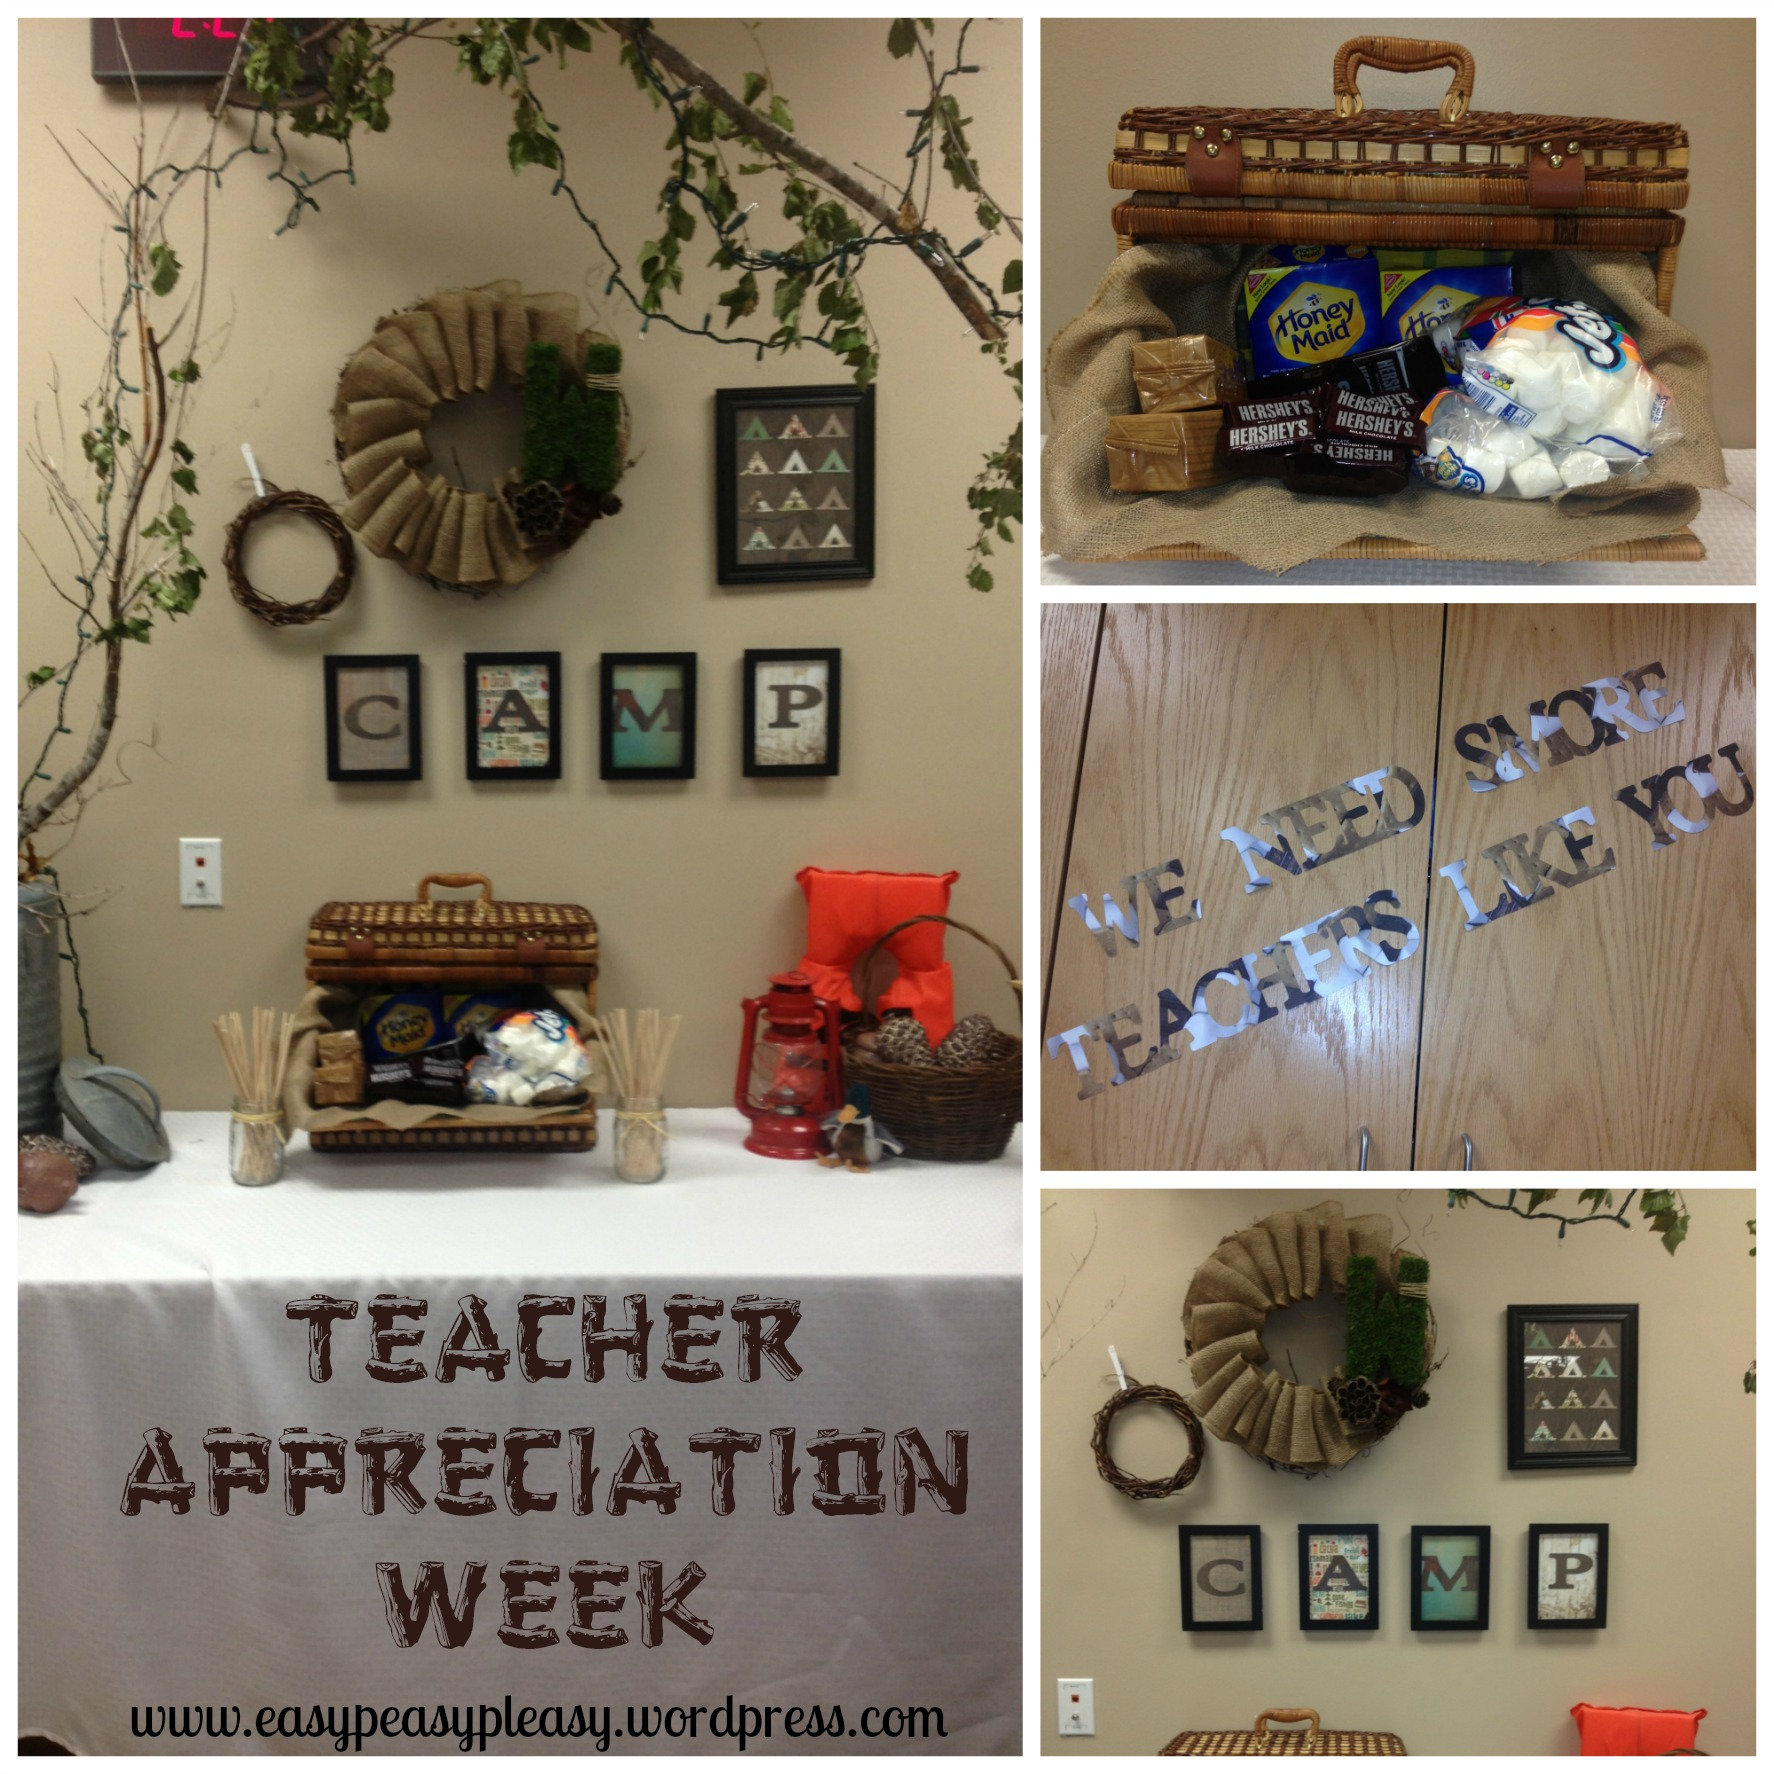 Teacher Appreciation Week Camping Theme Teacher's Lounge Makeover Ideas at www.easypeasypleasy.wordpress.com